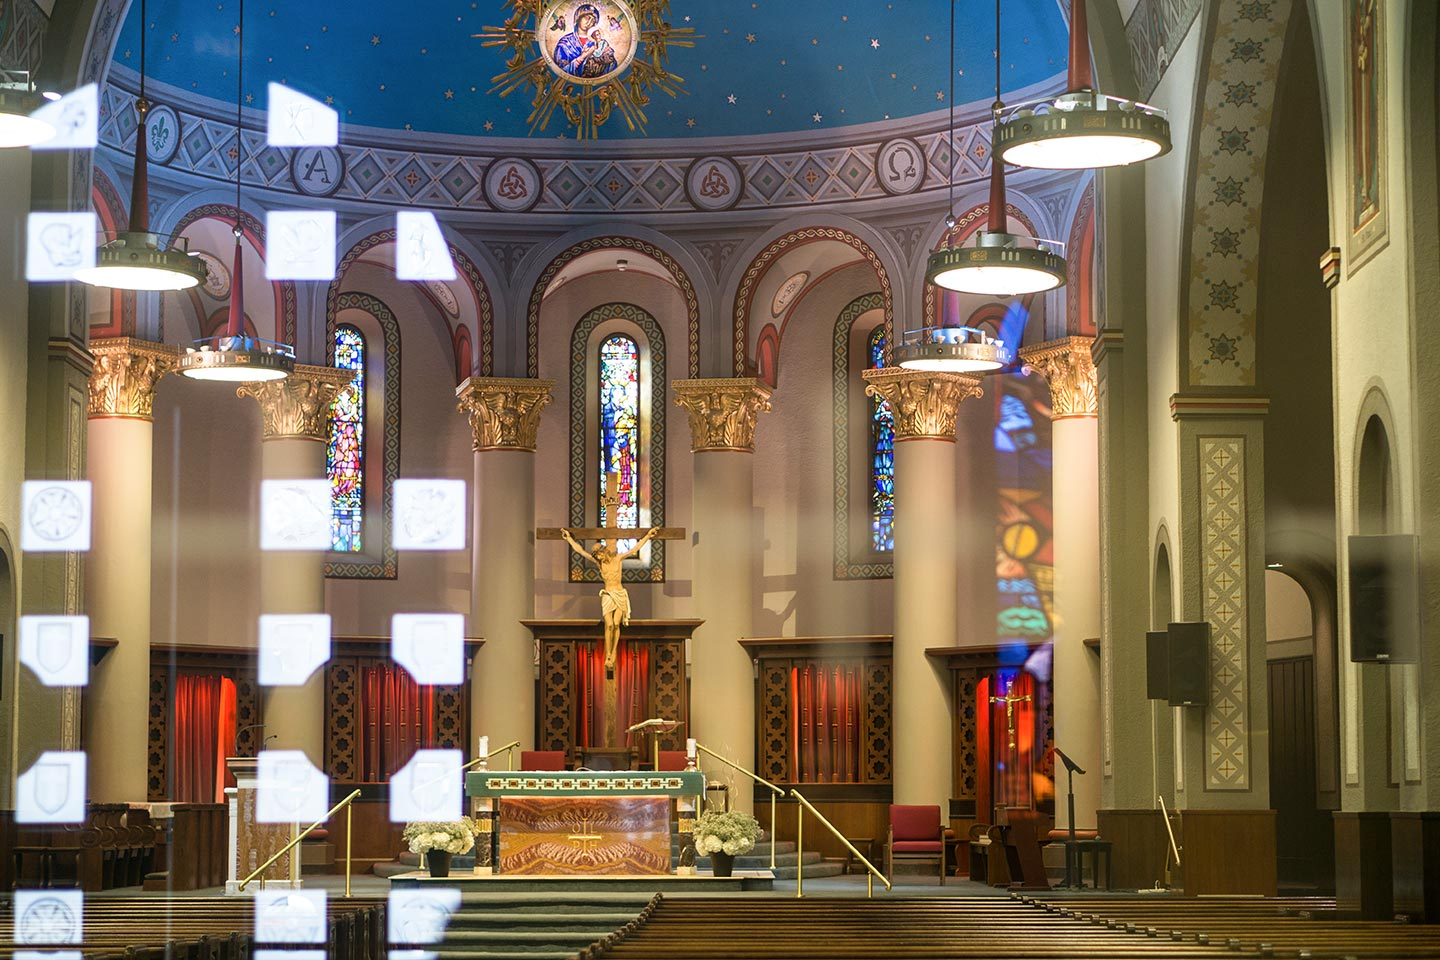 Our Lady of Perpetual Help - Reflections from the entrance